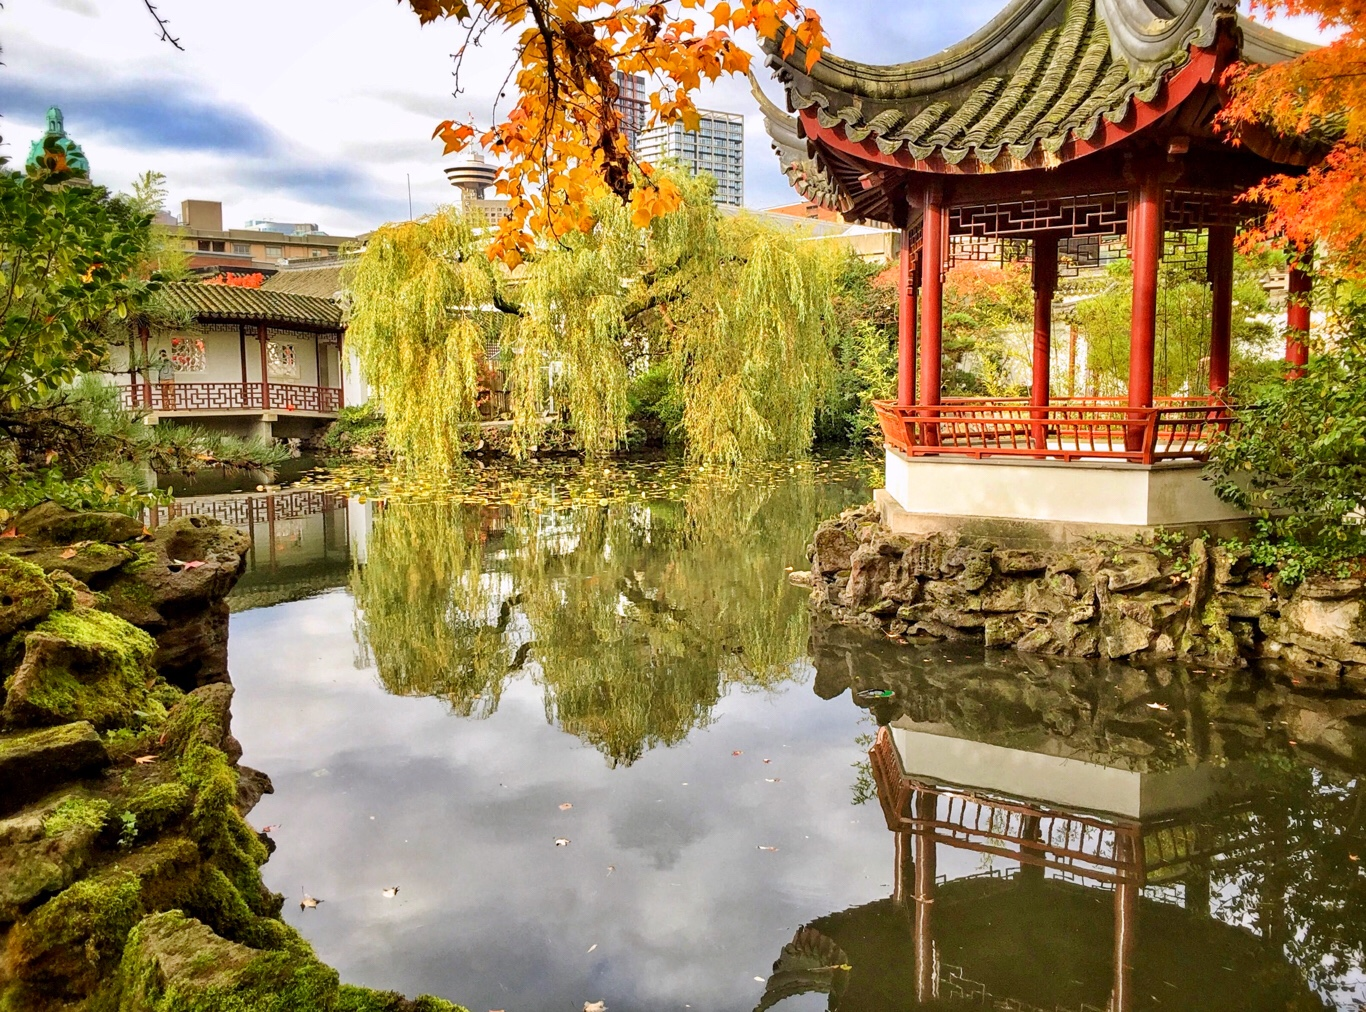 Sunday Evening Reflection: Dr. Sun Yat-Sen Classical Chinese Garden